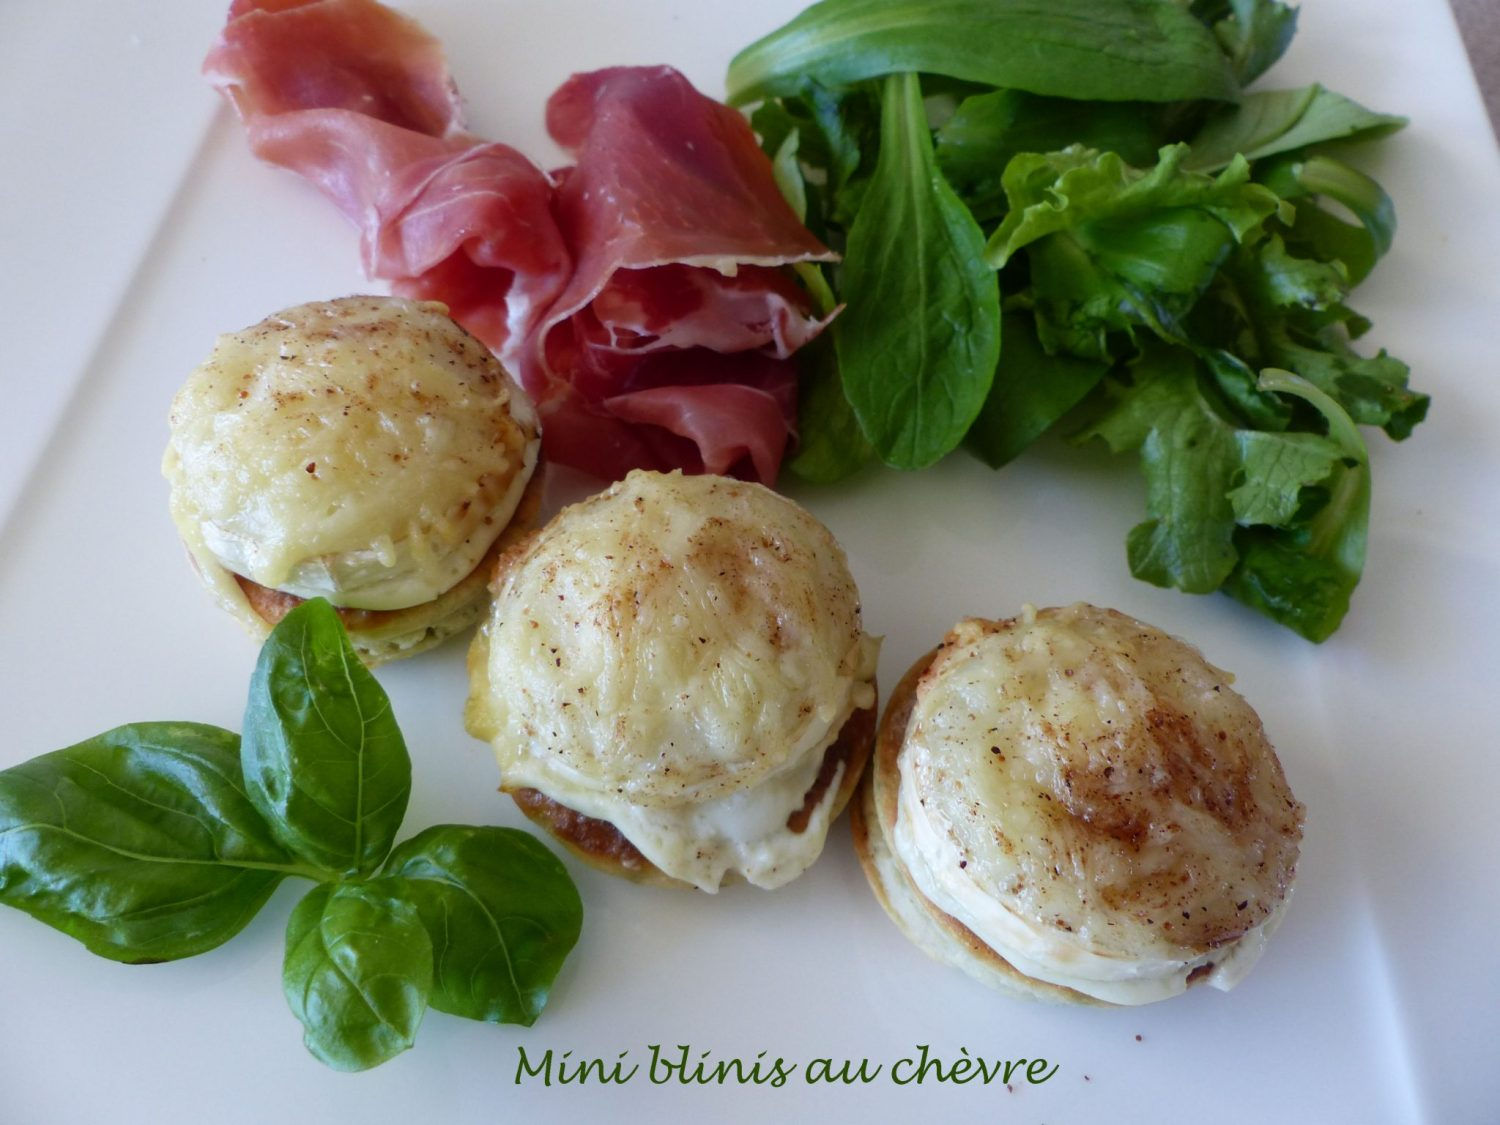 Mini blinis au chèvre P1130794 R